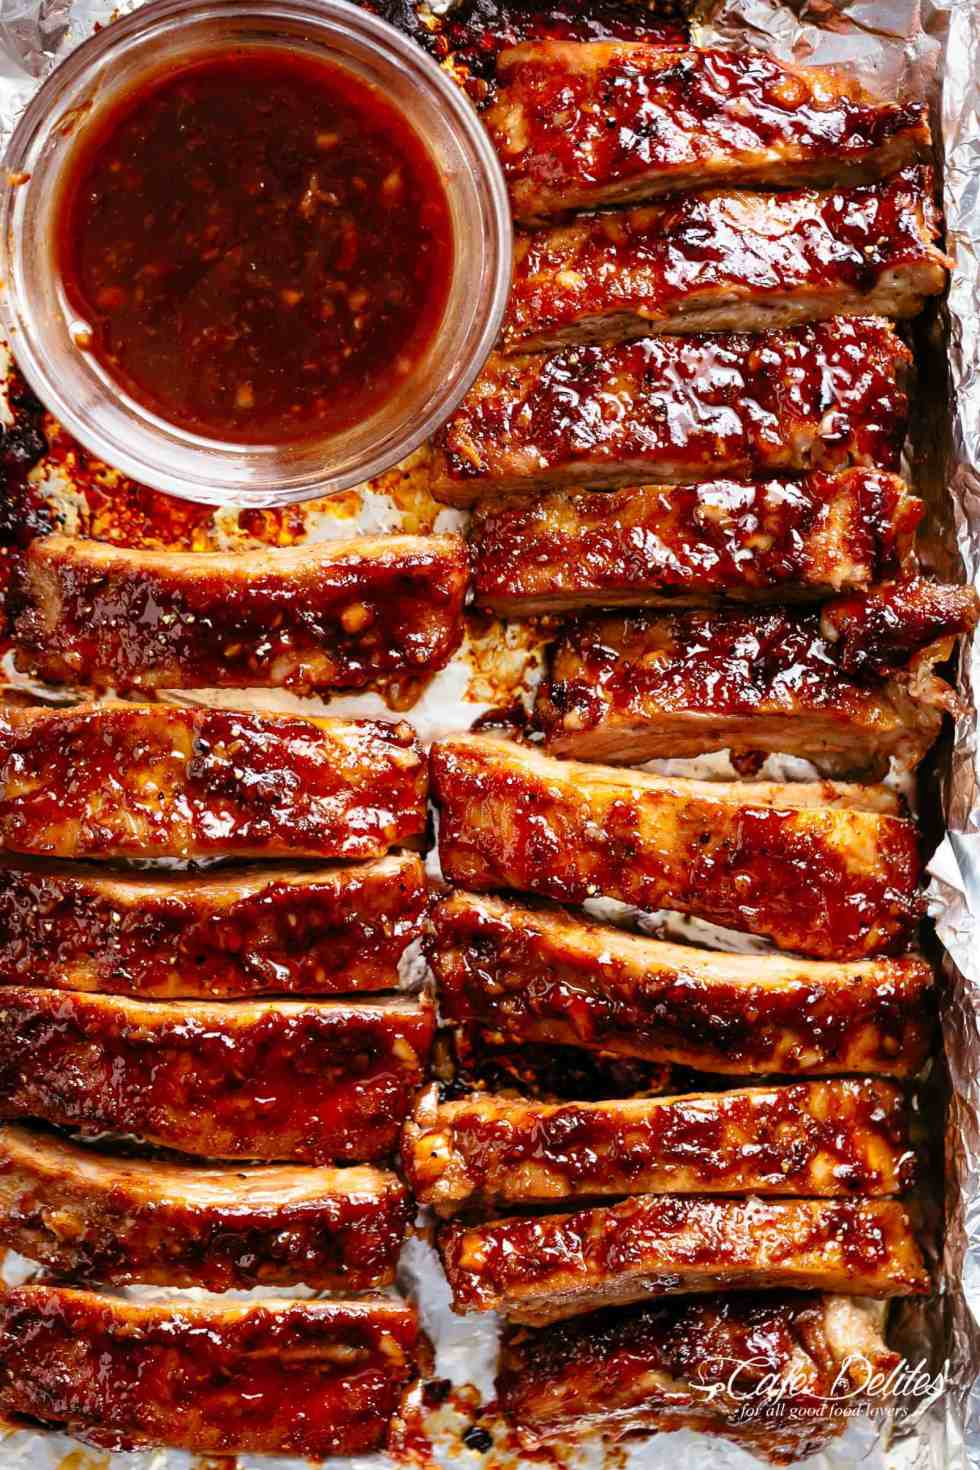 Oven Barbecue Ribs slathered in the most delicious sticky barbecue sauce with a kick of garlic and optional heat! Juicy melt-in-your-mouth oven baked Barbecue Pork Ribs are fall-off-the-bone delicious! Double up on incredible flavour with an easy to make dry rub first, then coat them in a seasoned barbecue sauce mixture so addictive you won't stop at one! Finger licking good ribs right here! | cafedelites.com